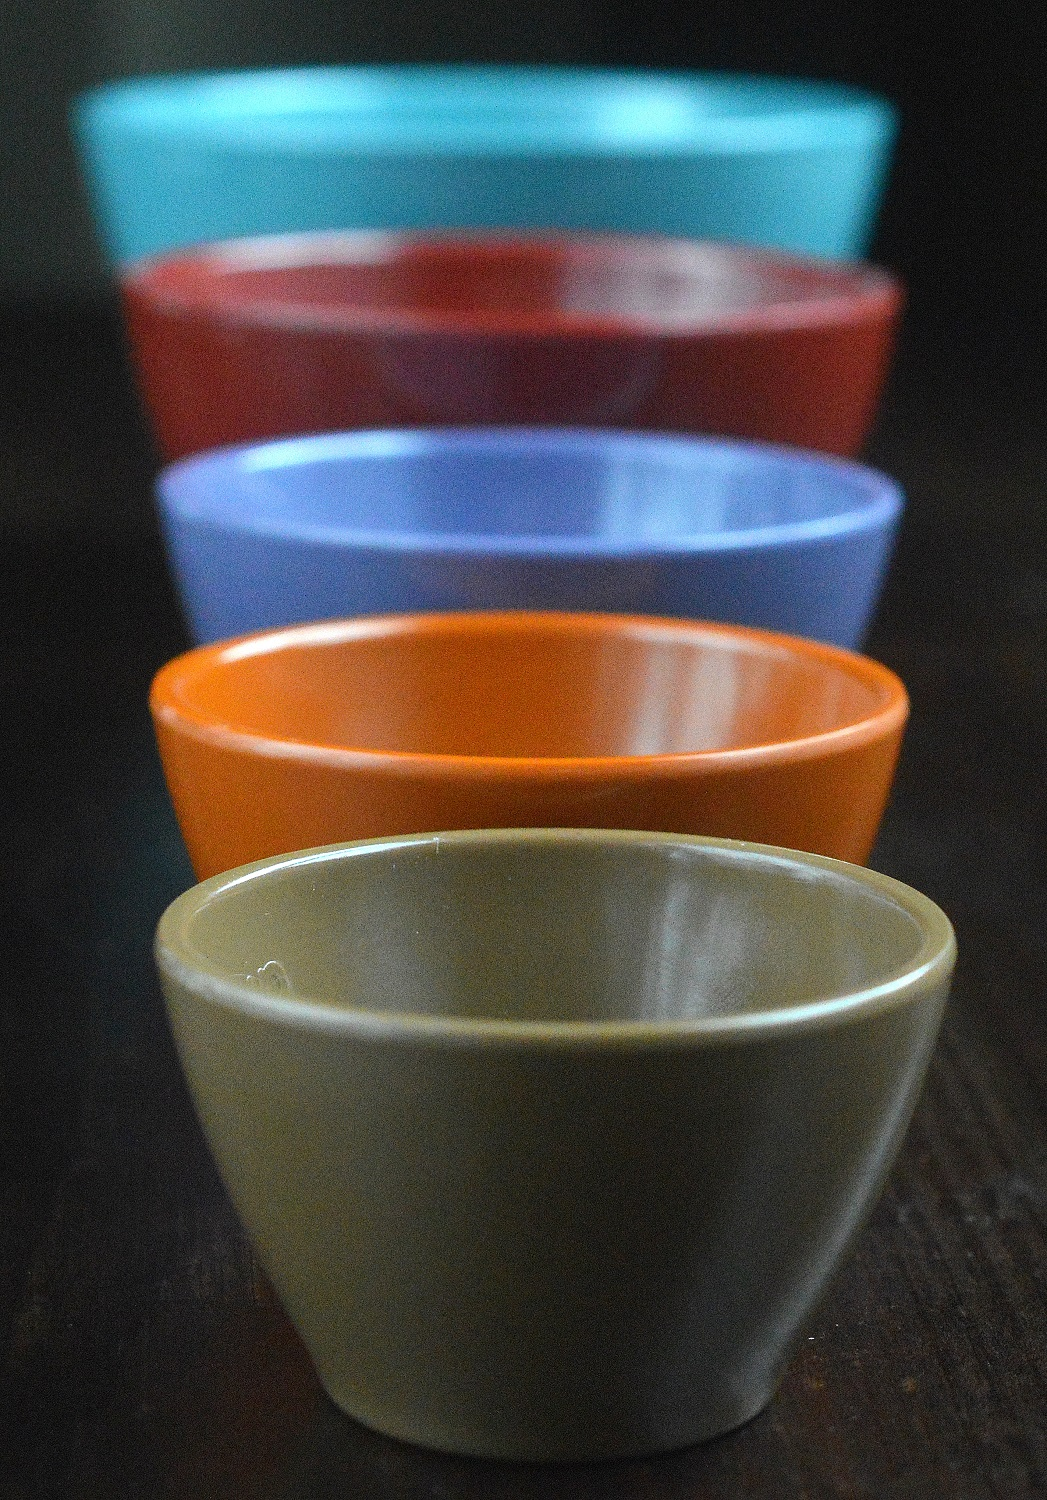 Rachael Ray Measuring cups from PotsandPans.com